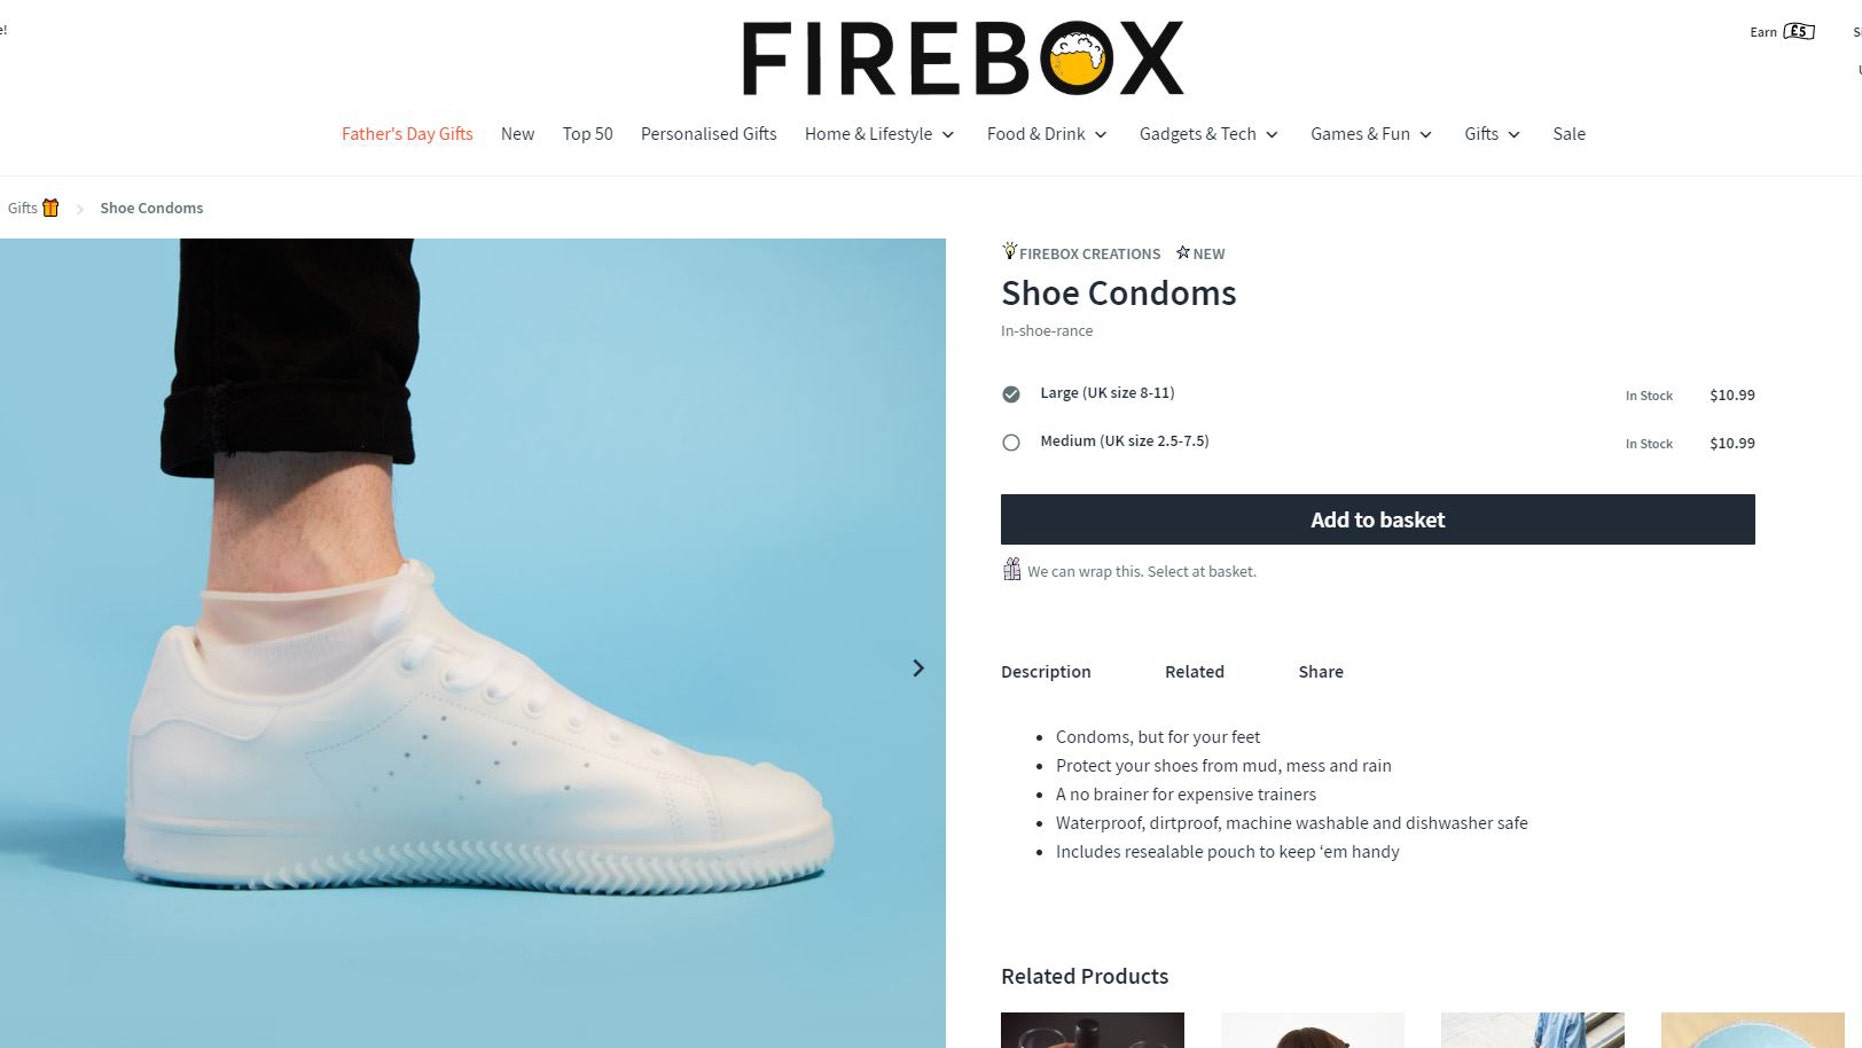 """Firebox, a UK e-tailer that sells """"unusual gifts for people with imagination,"""" is offering them up in sizes medium and large for an affordable $10.99."""